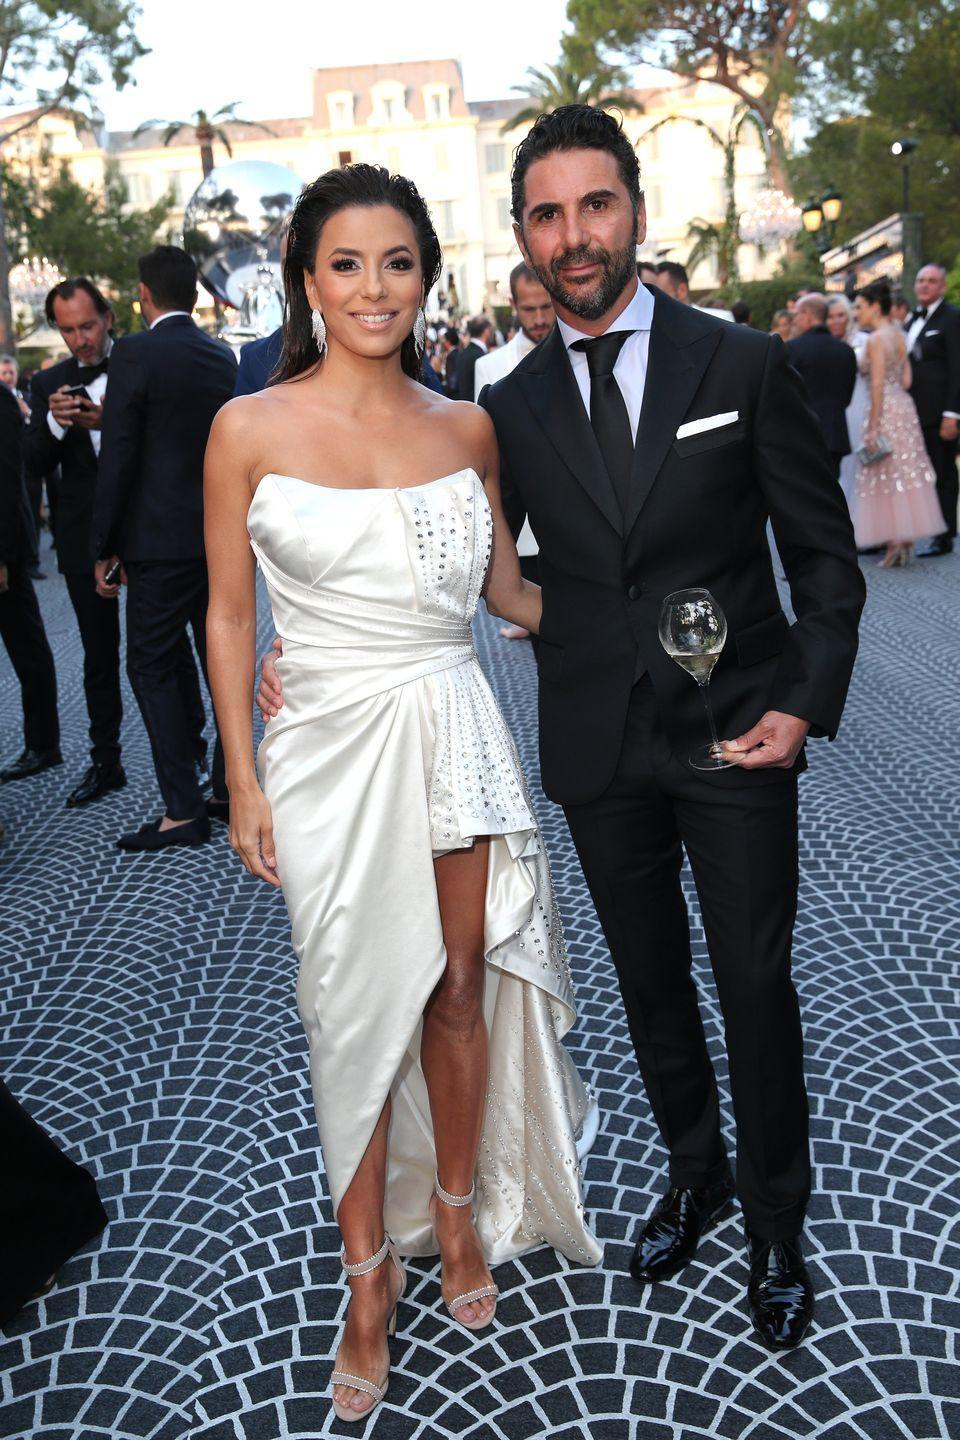 <p>Businessman Jose Antonio Baston is far from a novice in the entertainment world, as the former President of Televisa (the largest media company in Latin America). He and Eva Longoria were set up by a mutual friend in 2013, got married three years later, and welcomed a son in 2018.</p>